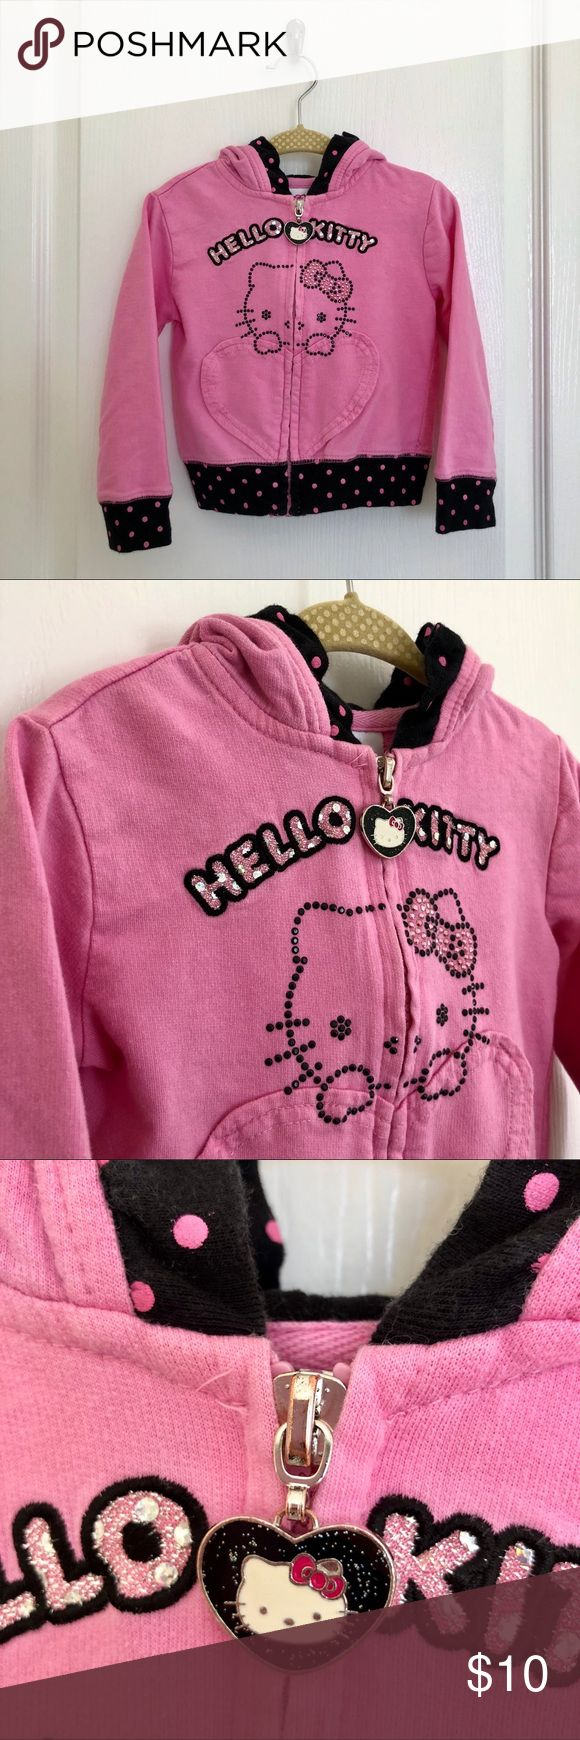 "Hello Kitty, Zip-Up Hoodie, Toddler Girl, 2T Hello Kitty, Doll Pink Zip-Up Hoodie featuring a rhinestone ""Hello Kitty"" design, embroidered ""HELLO KITTY"", patch appliqués on back, black with pink polka dot hems and coordinating fabric as hood lining.  100% Cotton. Machine wash.  Worn with love. Fair condition. Sanrio Shirts & Tops Sweatshirts & Hoodies"